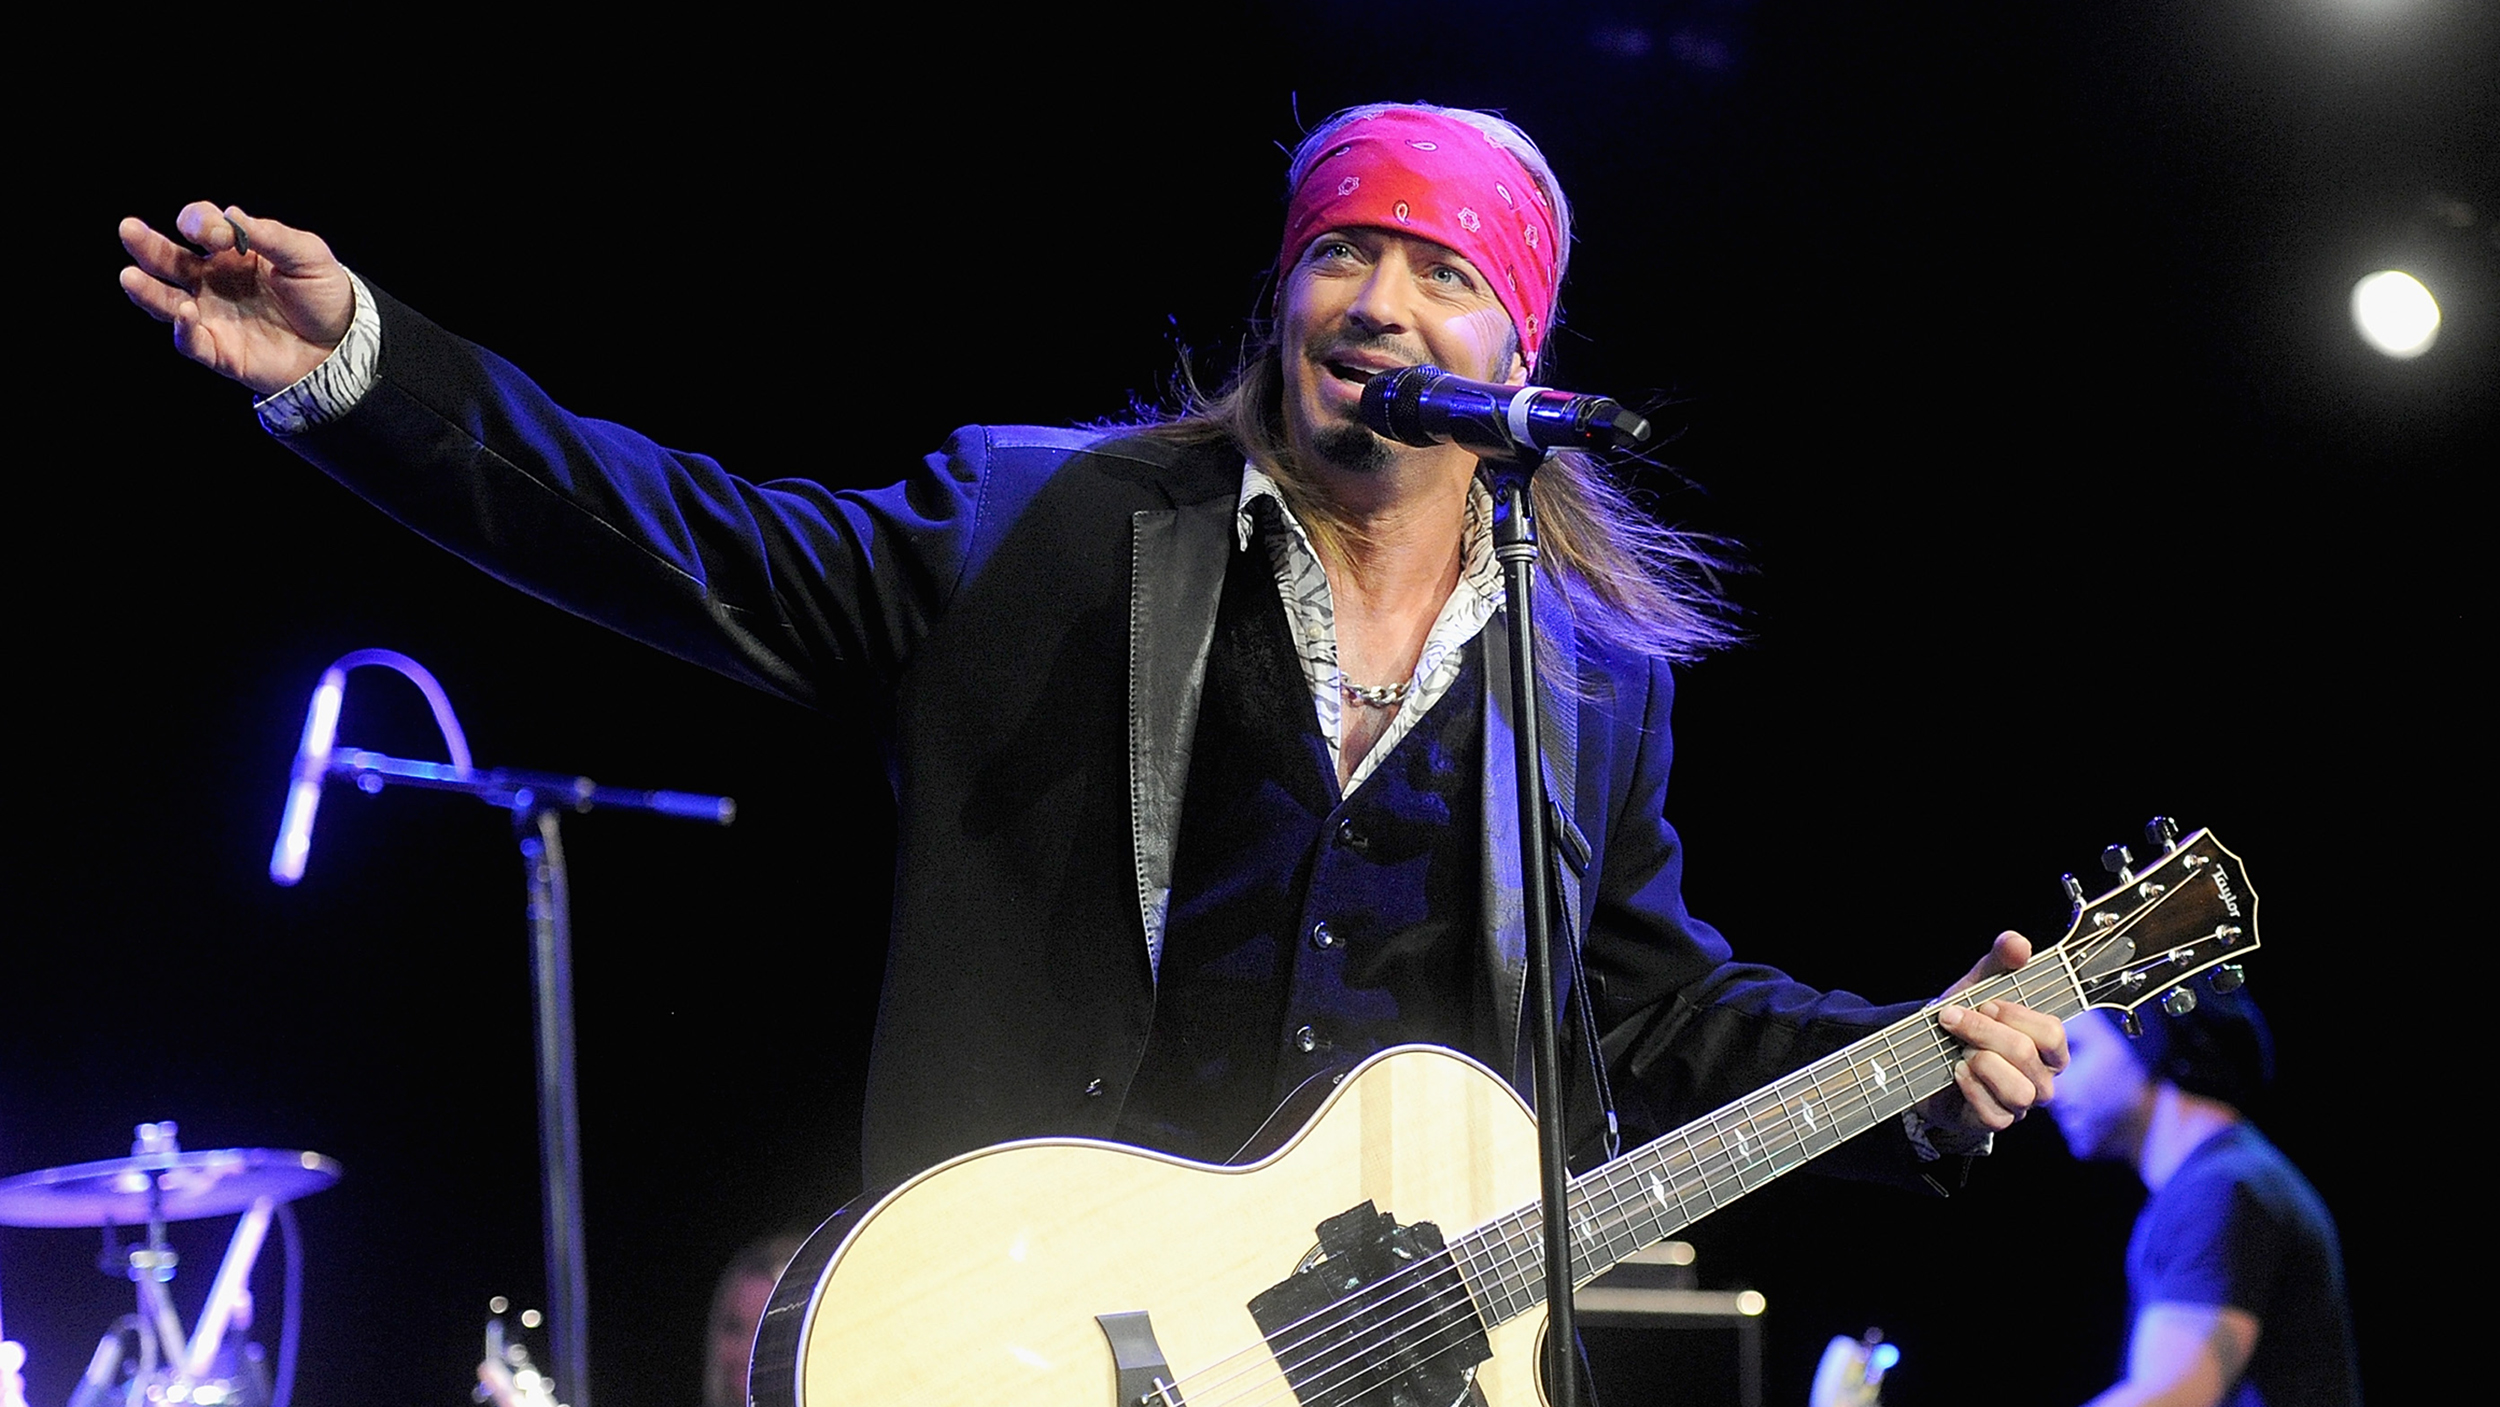 Bret Michaels Ends Concert Early After Suffering Diabetic